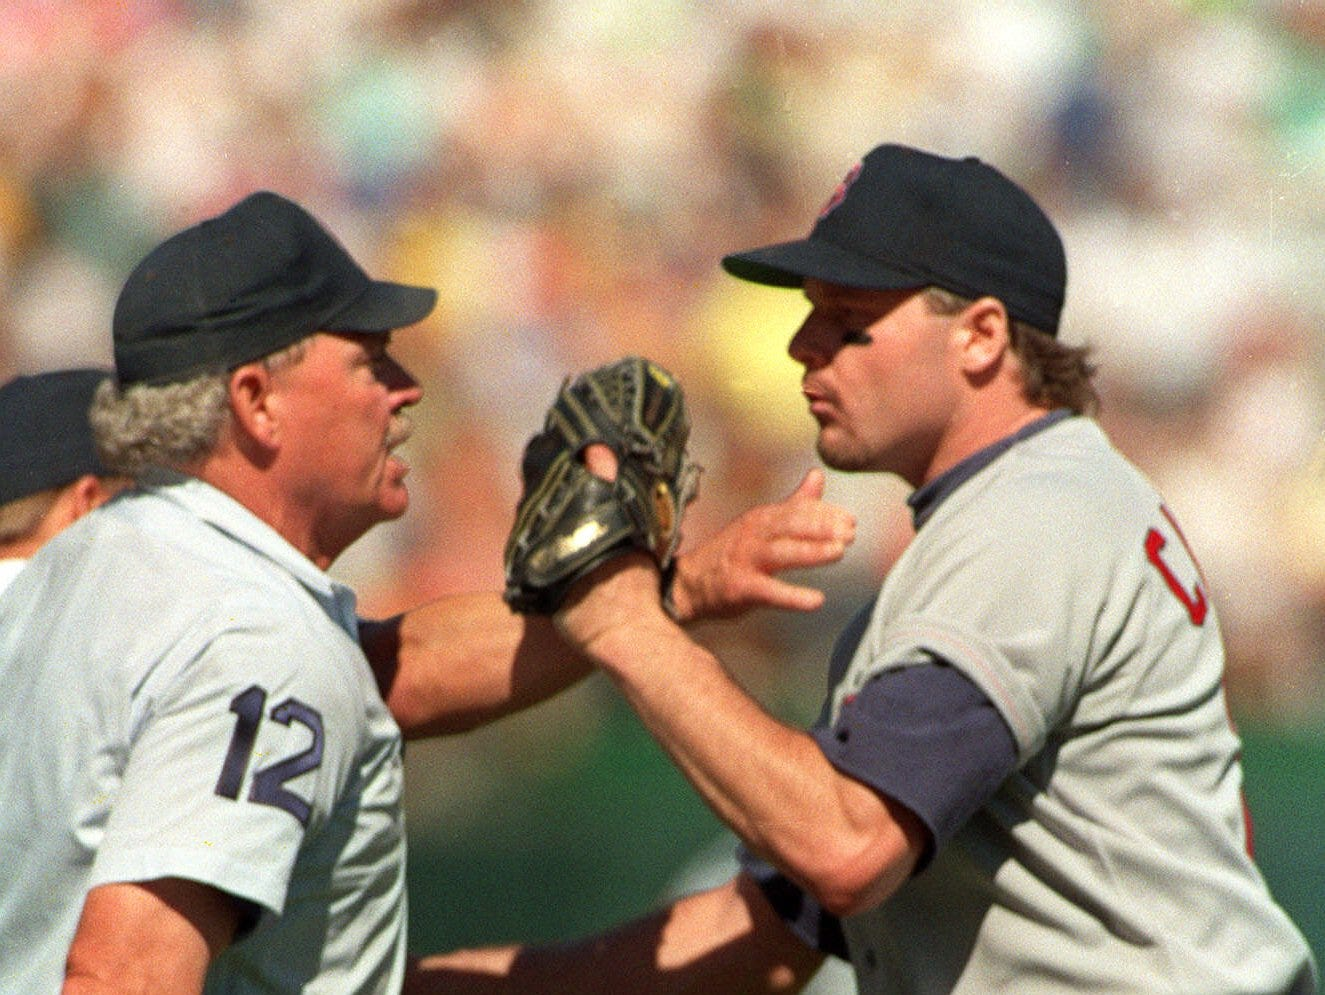 1990 ALCS Game 4: Red Sox starter Roger Clemens was ejected in the second inning against the Athletics, by umpire Terry Cooney.